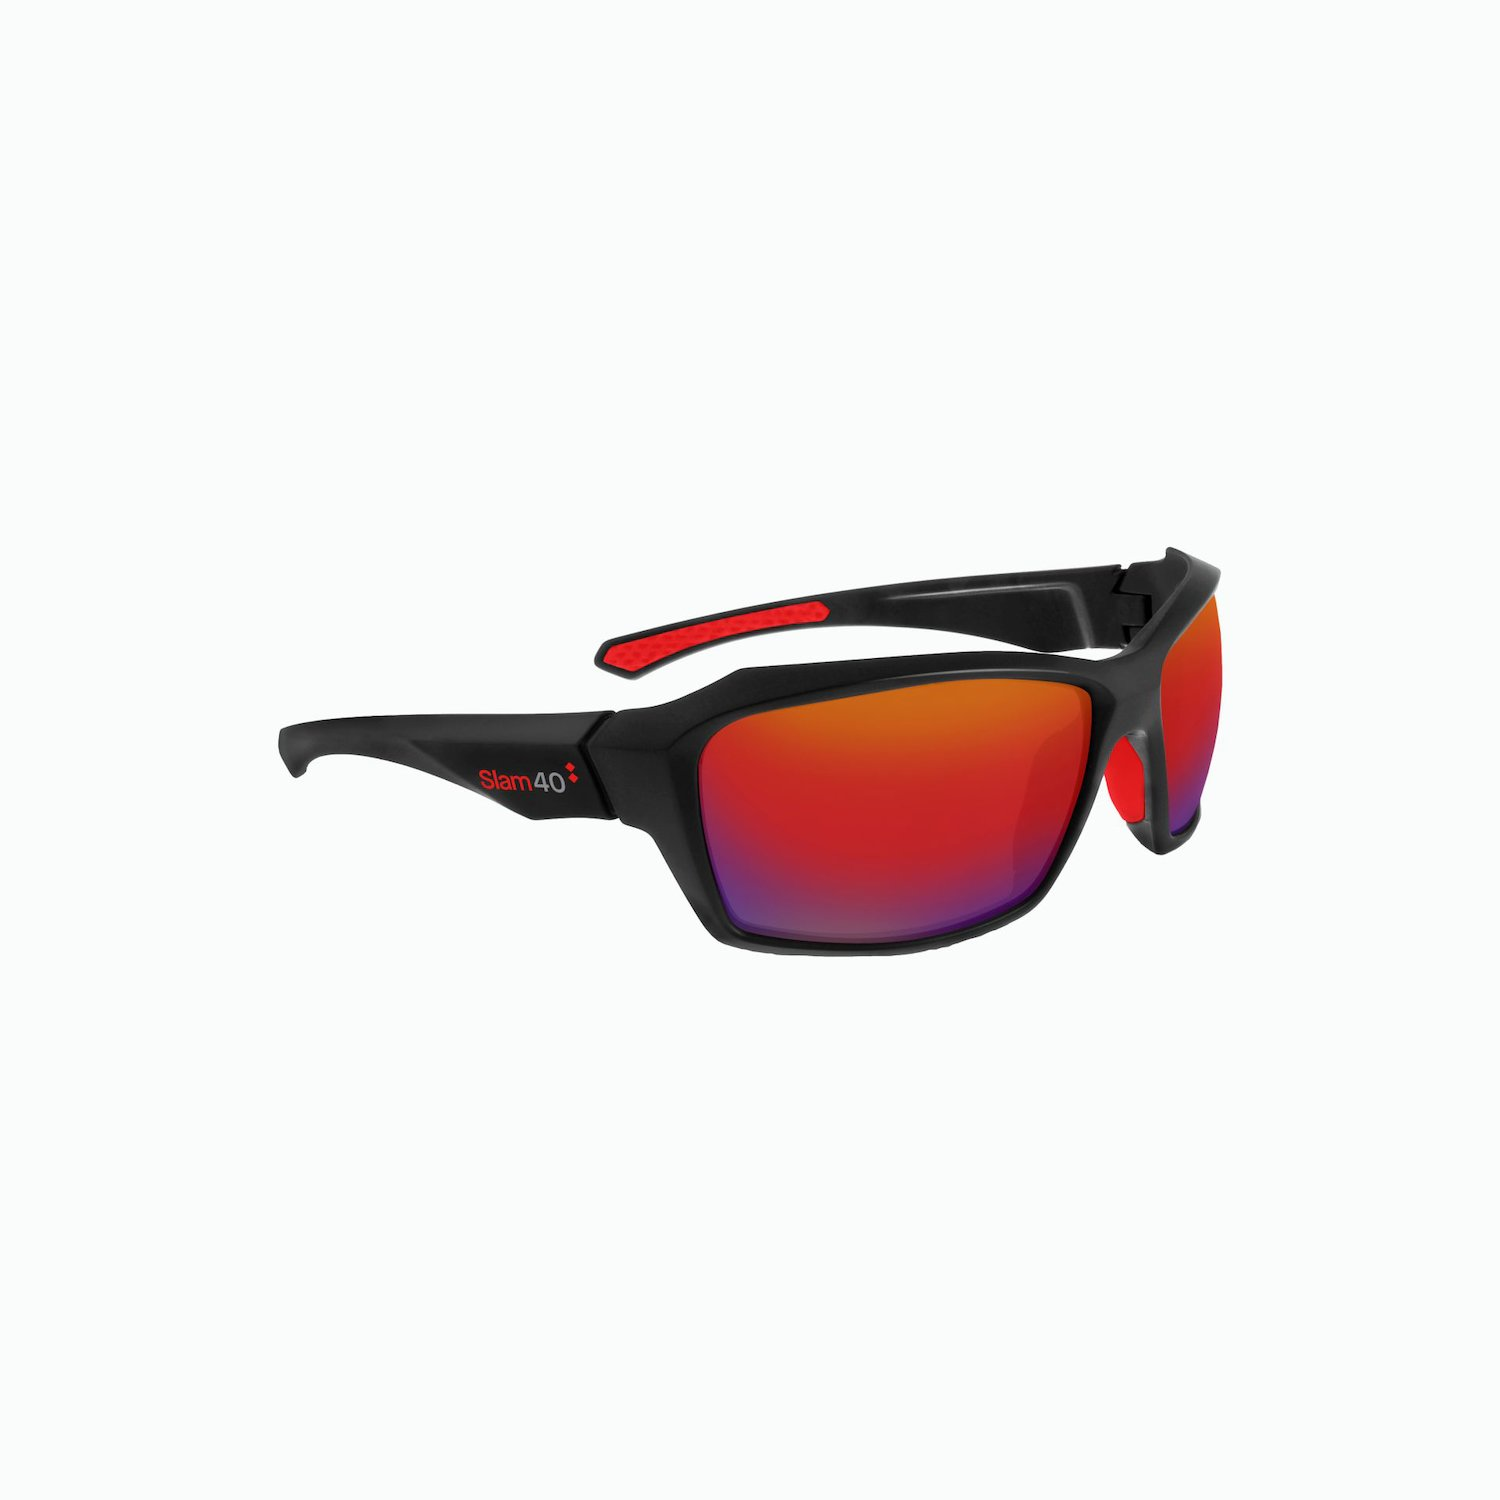 40th Sunglasses - Black / Red / Red